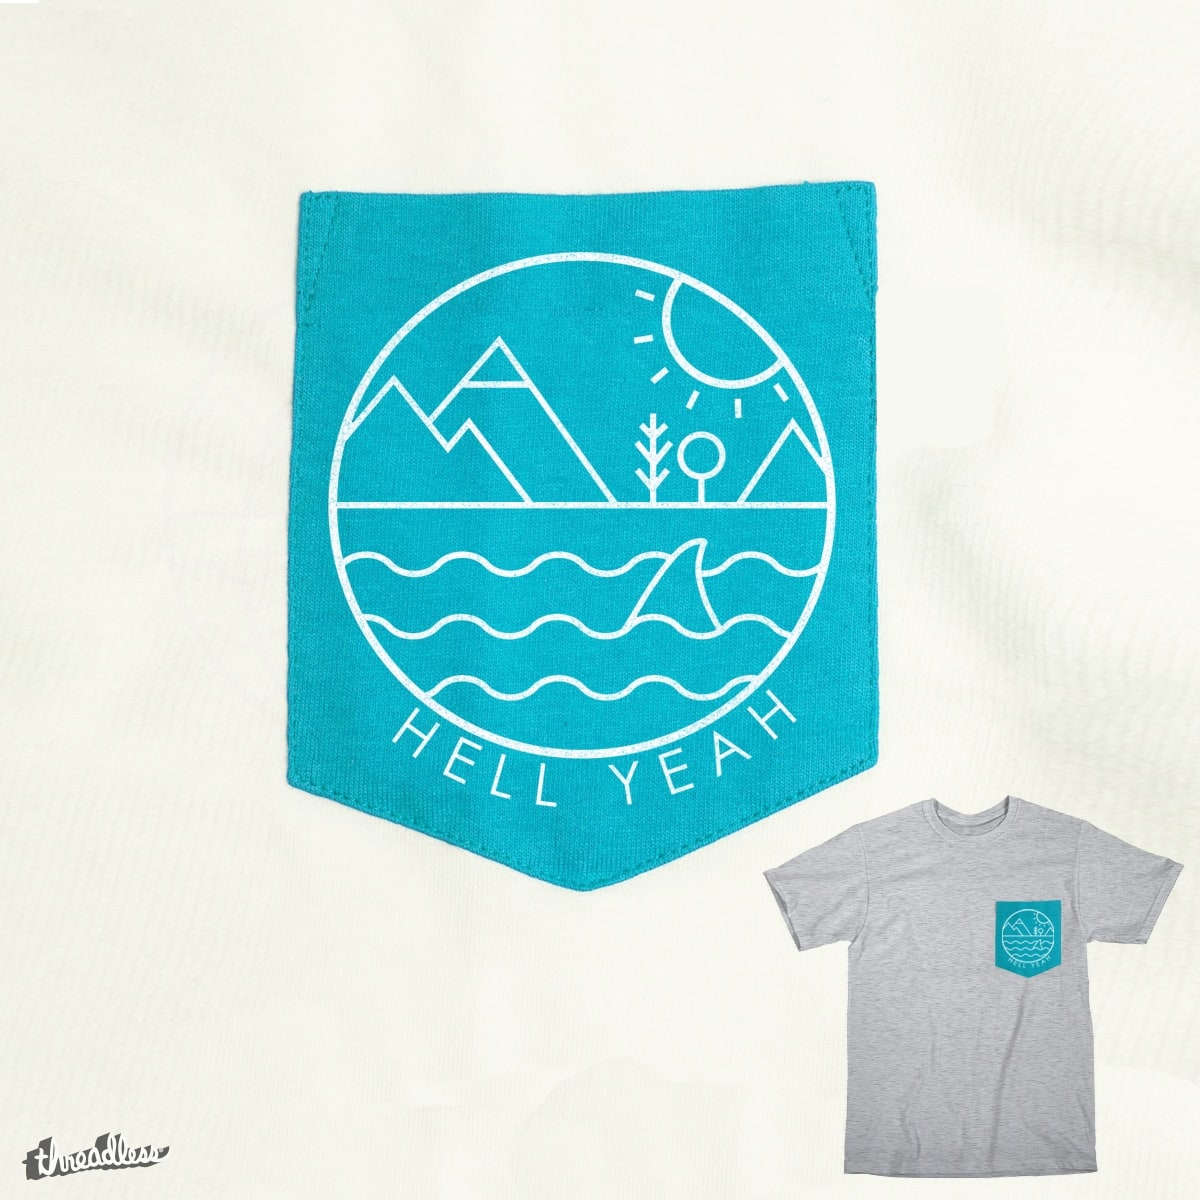 Hell Yeah by Farnell on Threadless